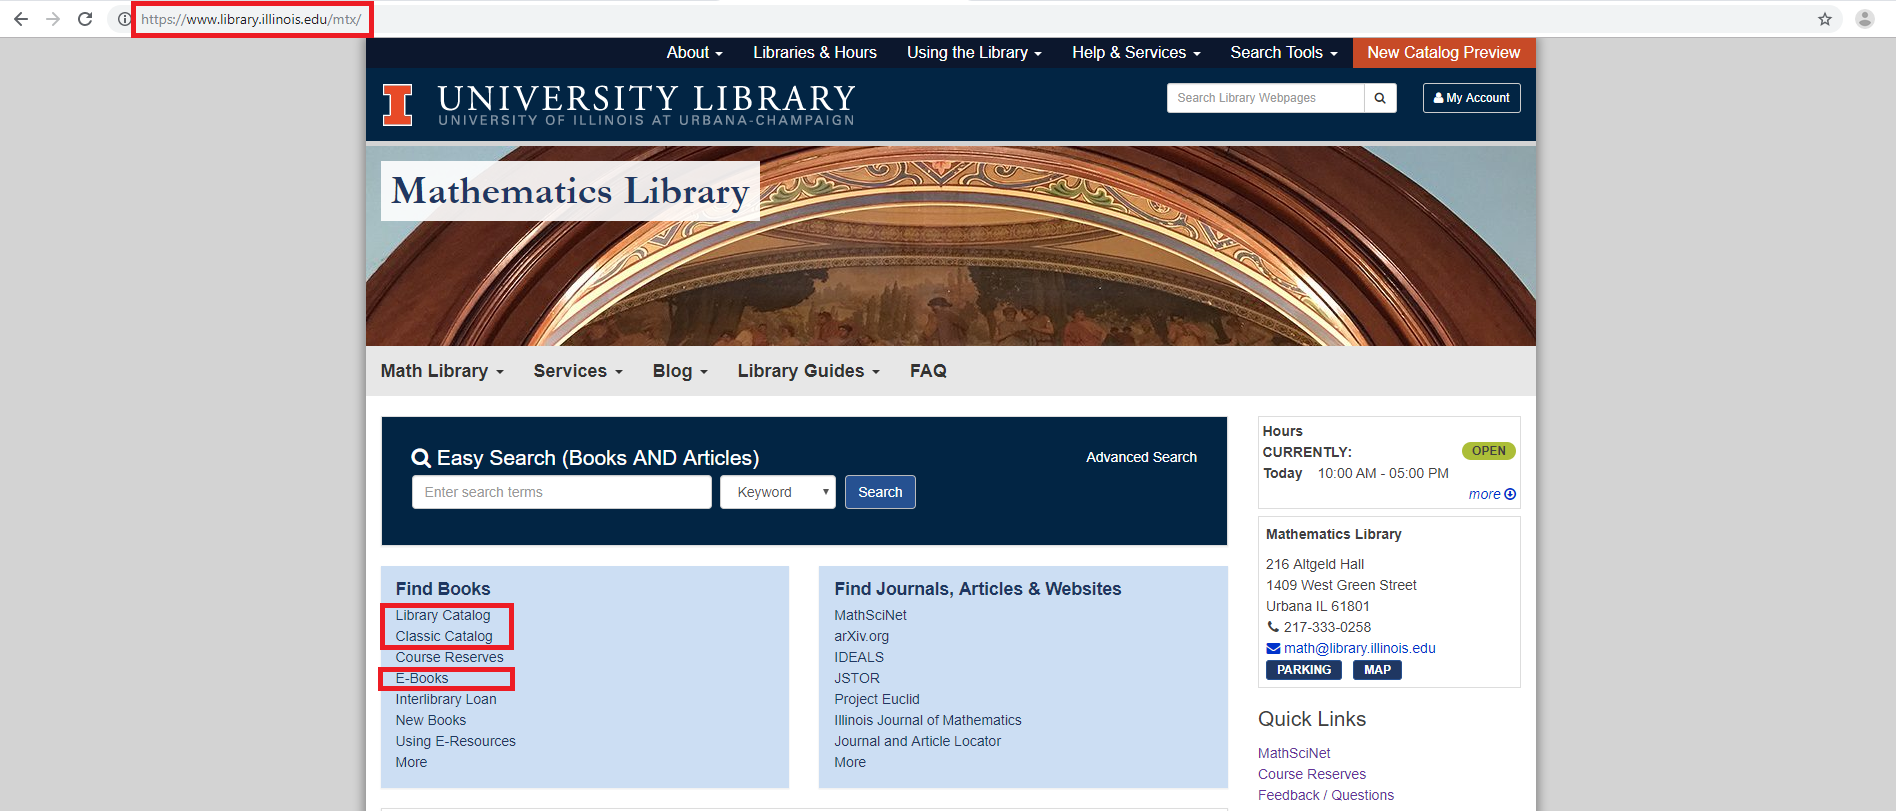 Red rectangles highlight the URL for the Mathematics Website and links to the Library Catalog, Classic Catalog, and the E-Books page.